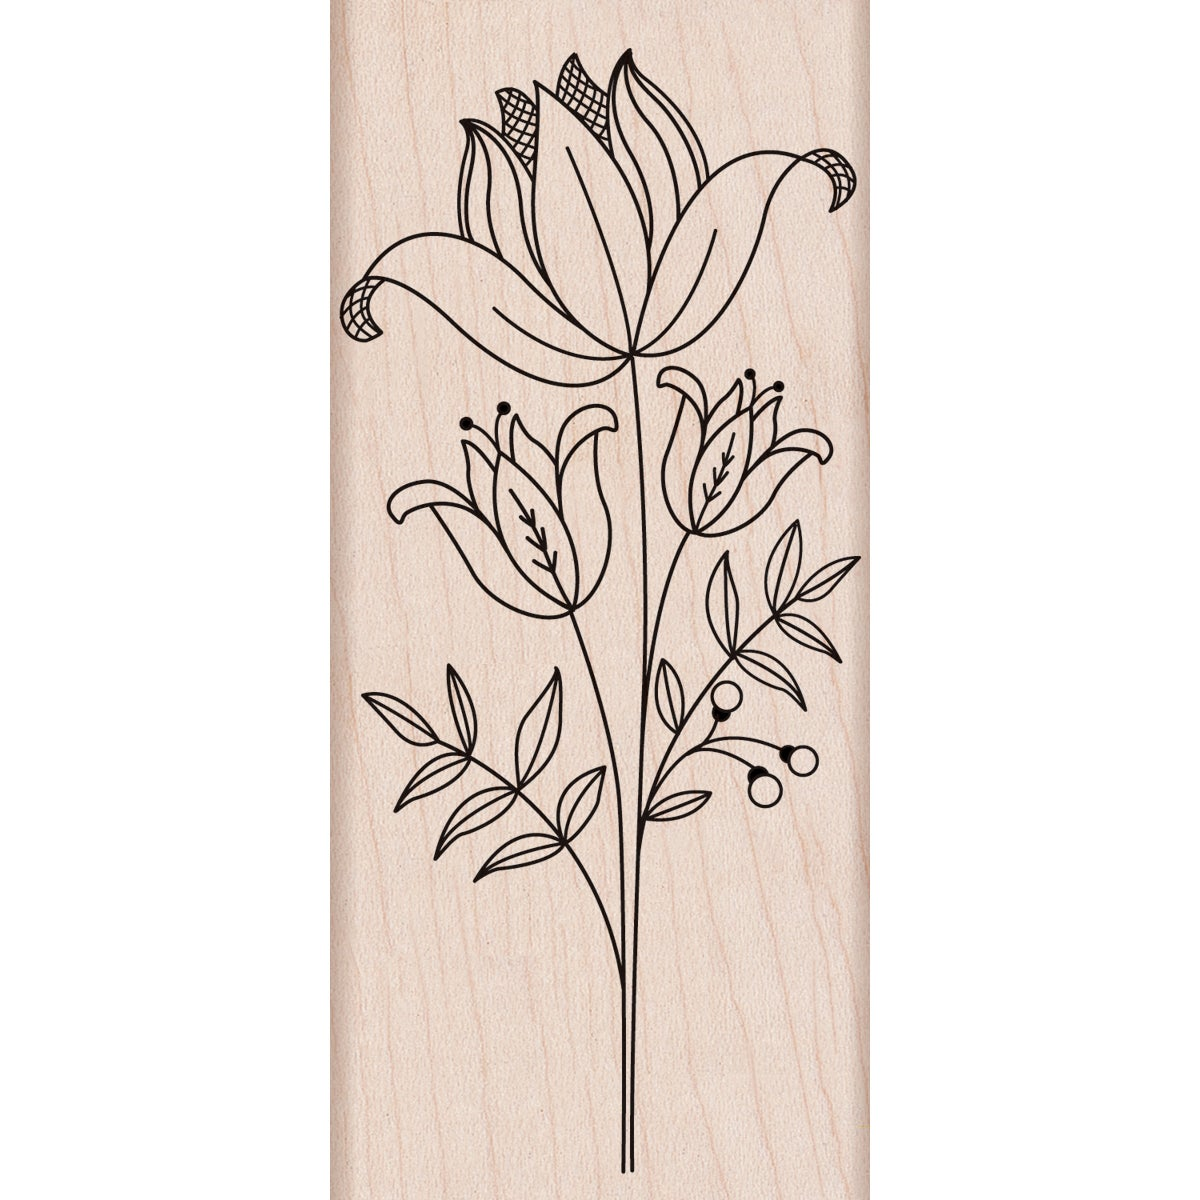 Hero Arts 'Tall Flower' Mounted Rubber Stamps